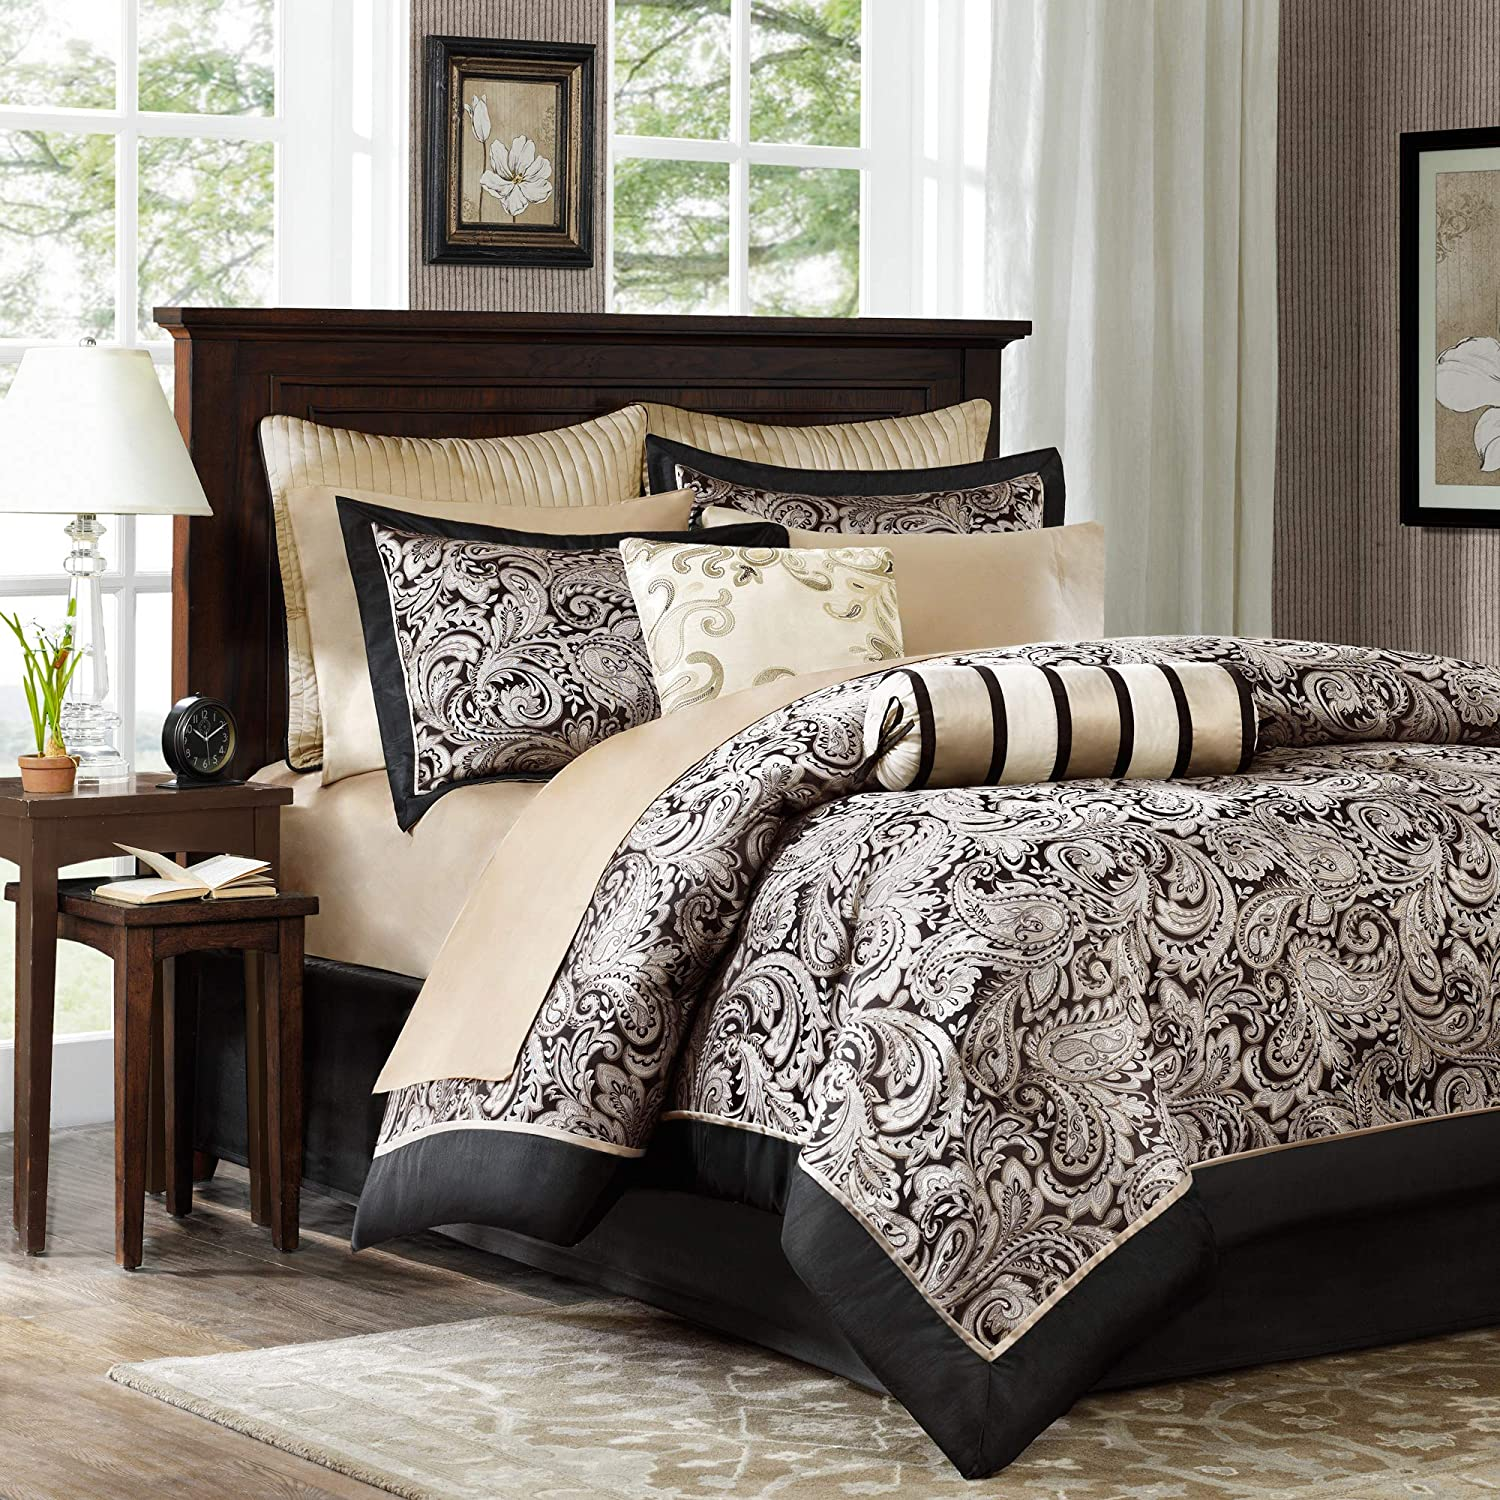 Madison Park Aubrey Queen Size Bed Comforter Set Bed In A Bag - Black, Champagne , Paisley Jacquard – 12 Pieces Bedding Sets – Ultra Soft Microfiber Bedroom Comforters: Home & Kitchen